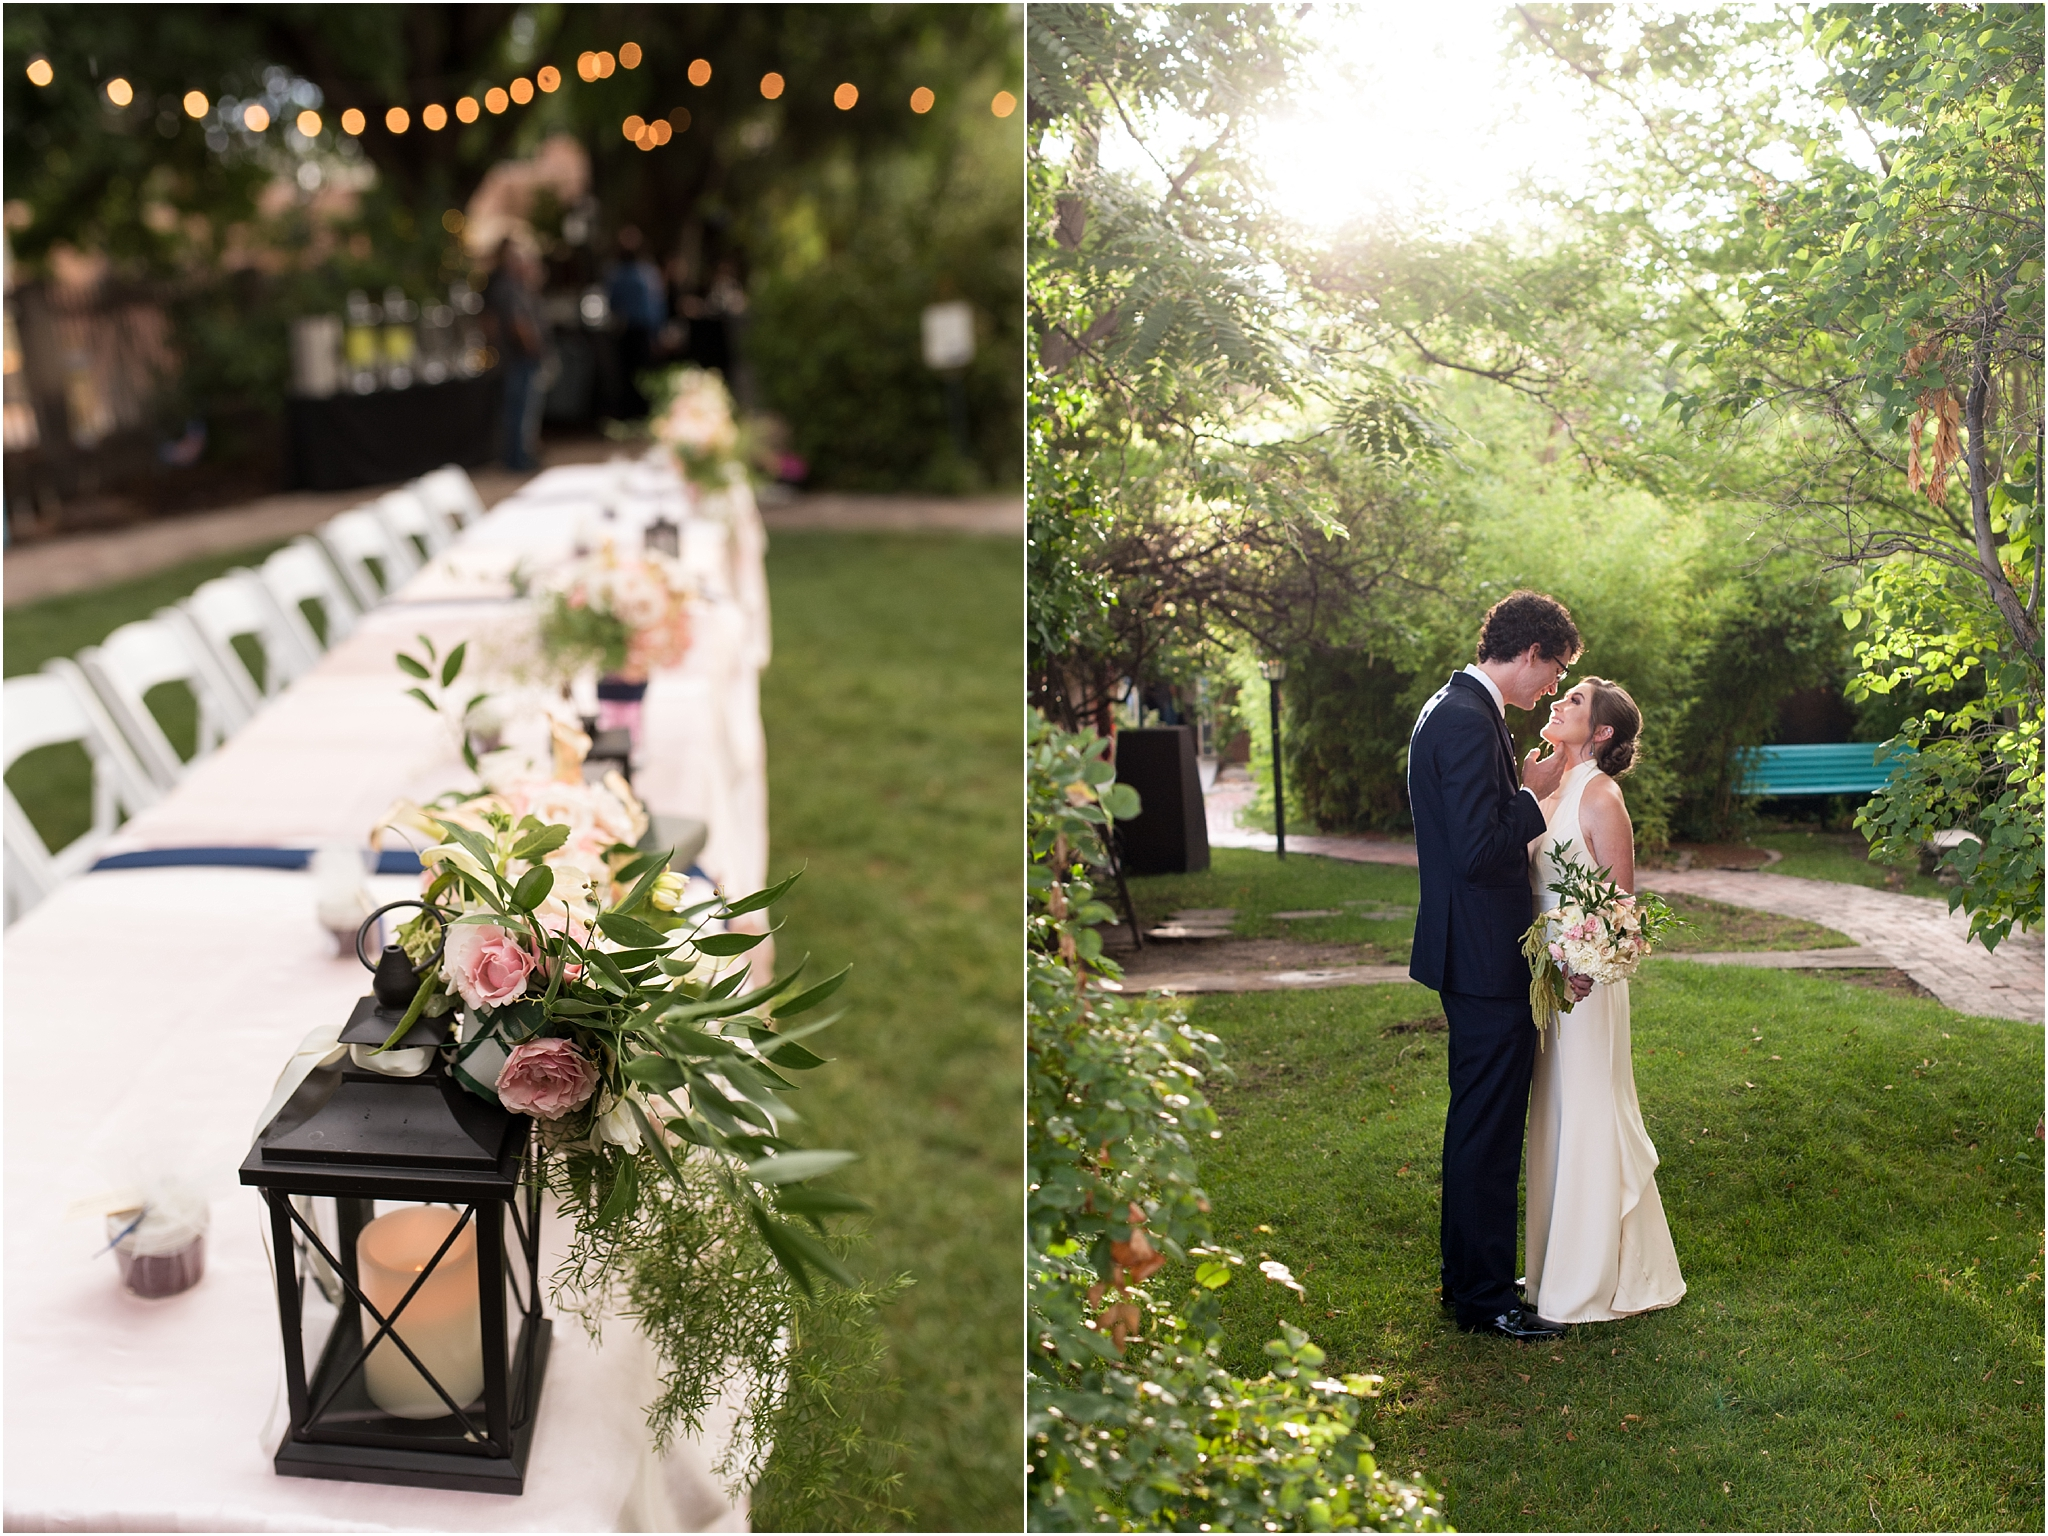 kayla kitts photography - new mexico wedding photographer - albuquerque botanic gardens - hotel albuquerque-casa de suenos_0230.jpg